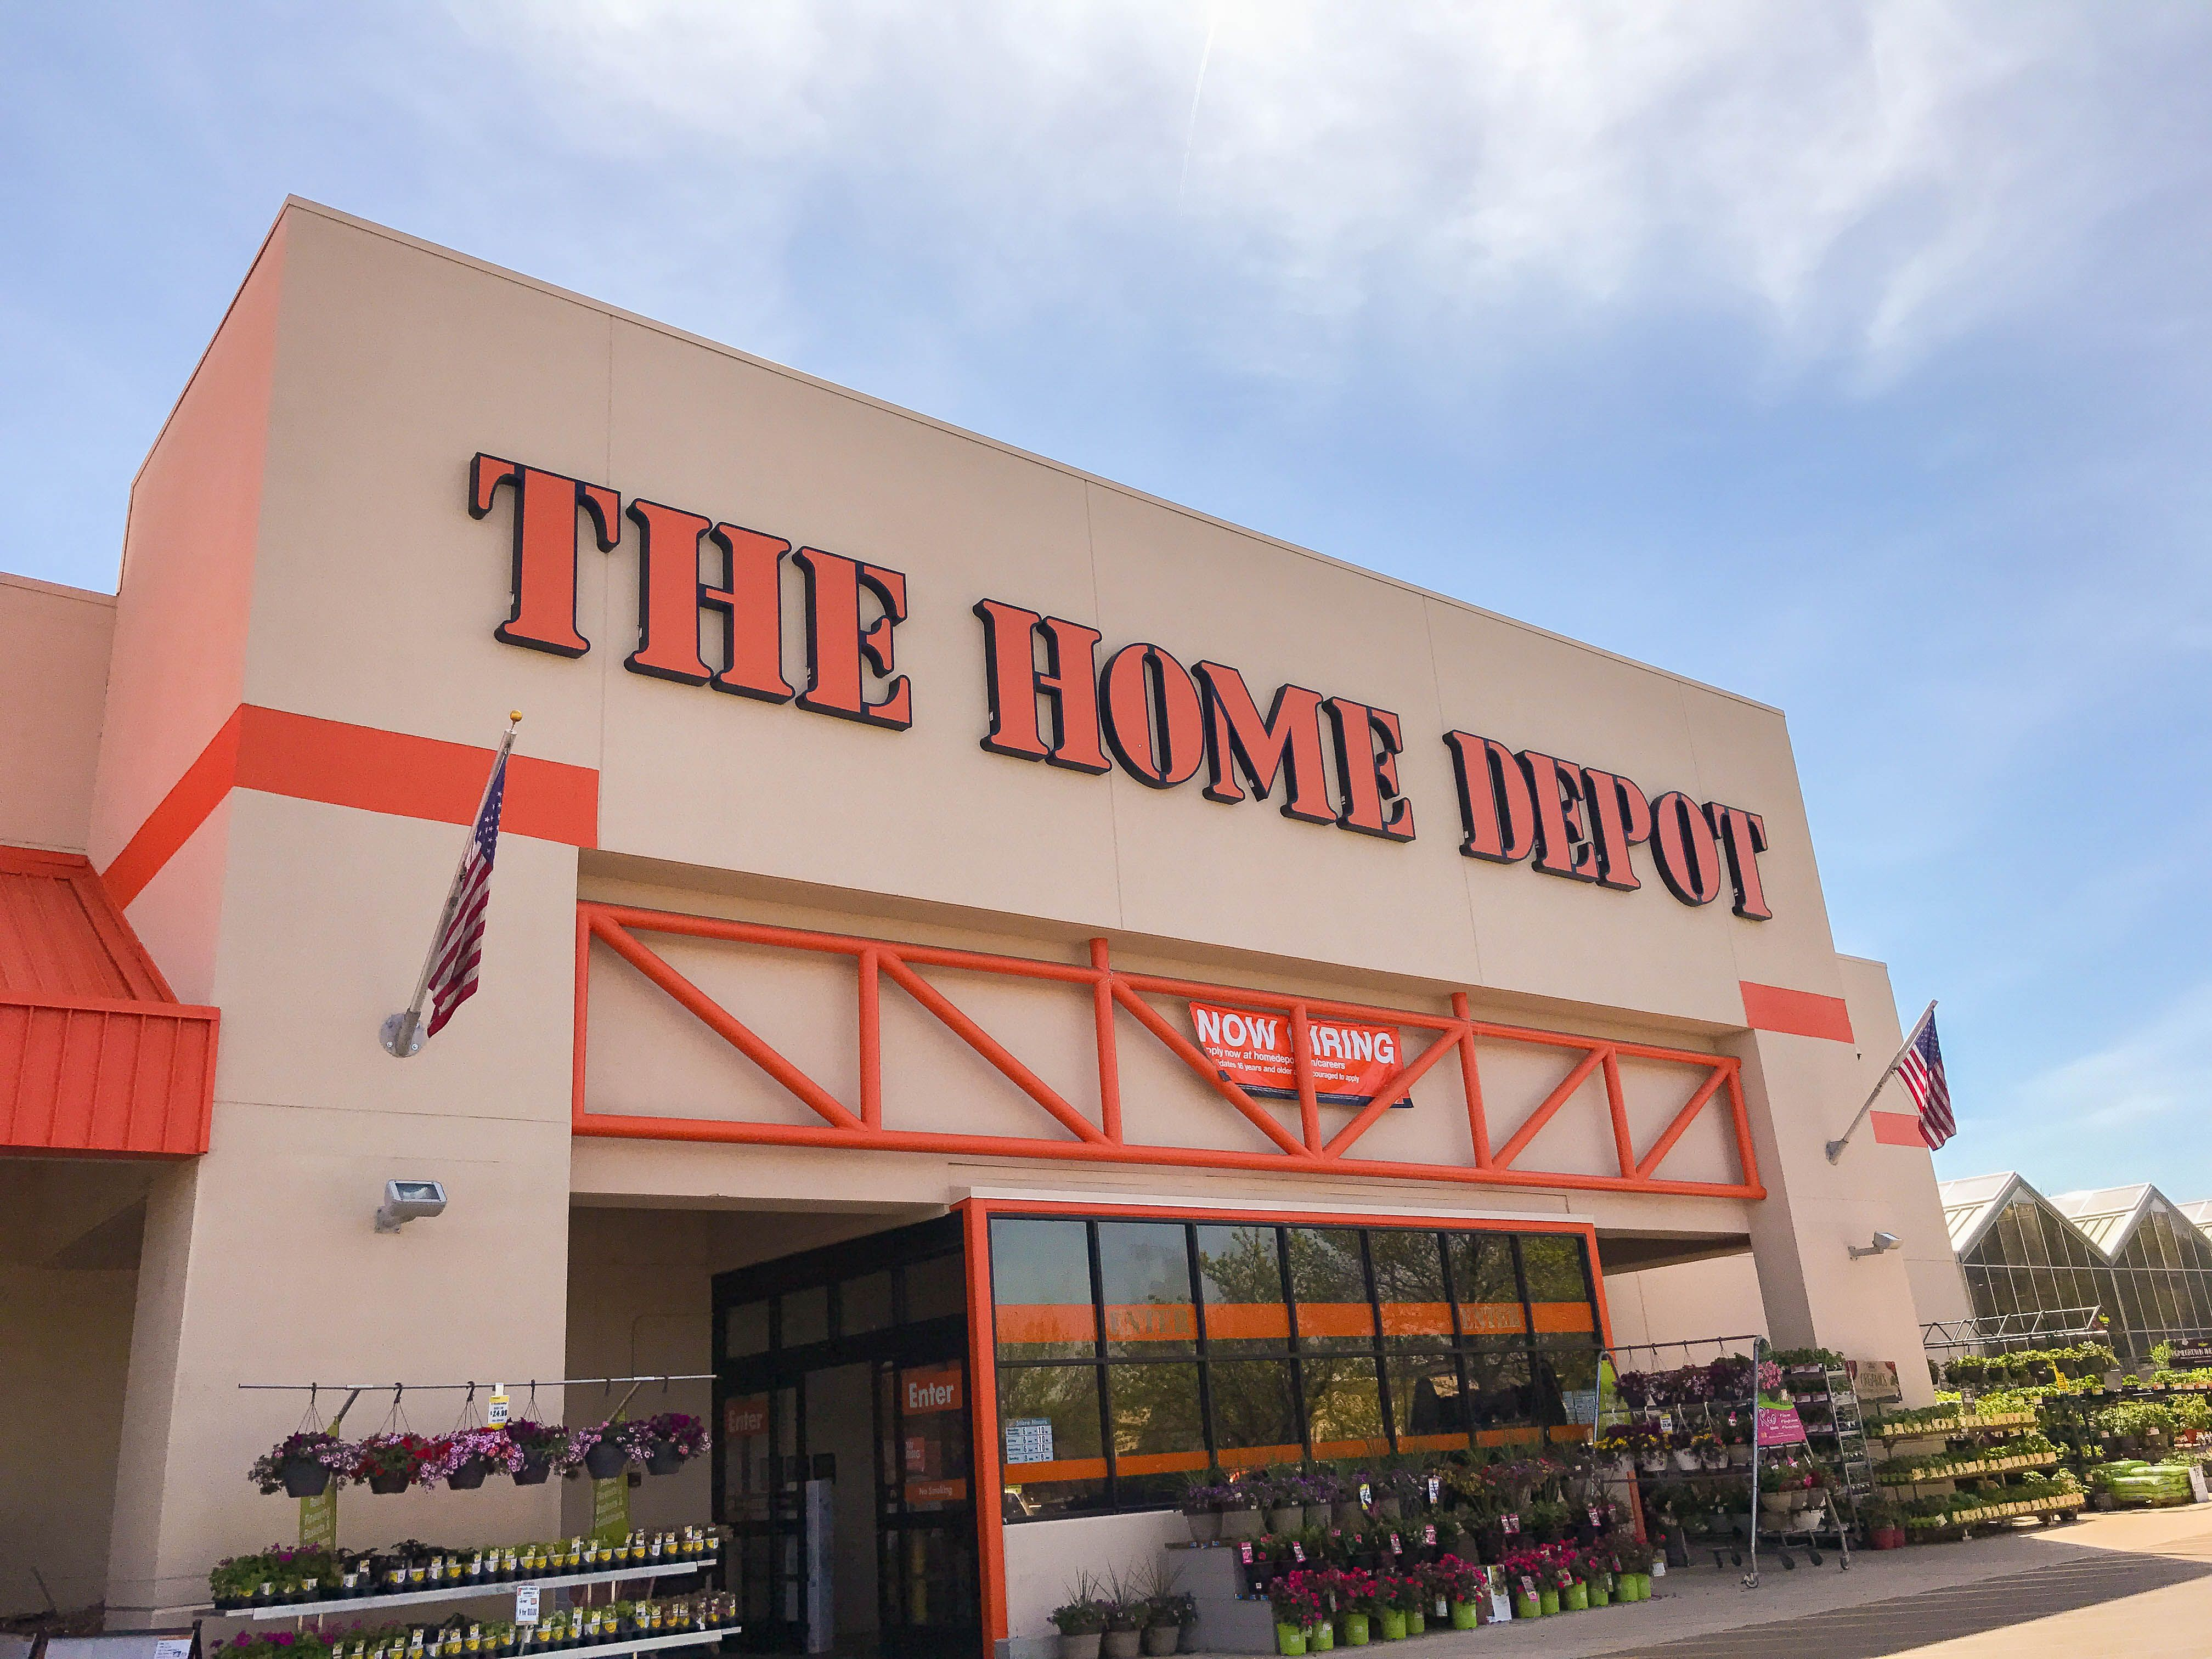 12 Home Depot Discounts That Will Save You Hundreds on